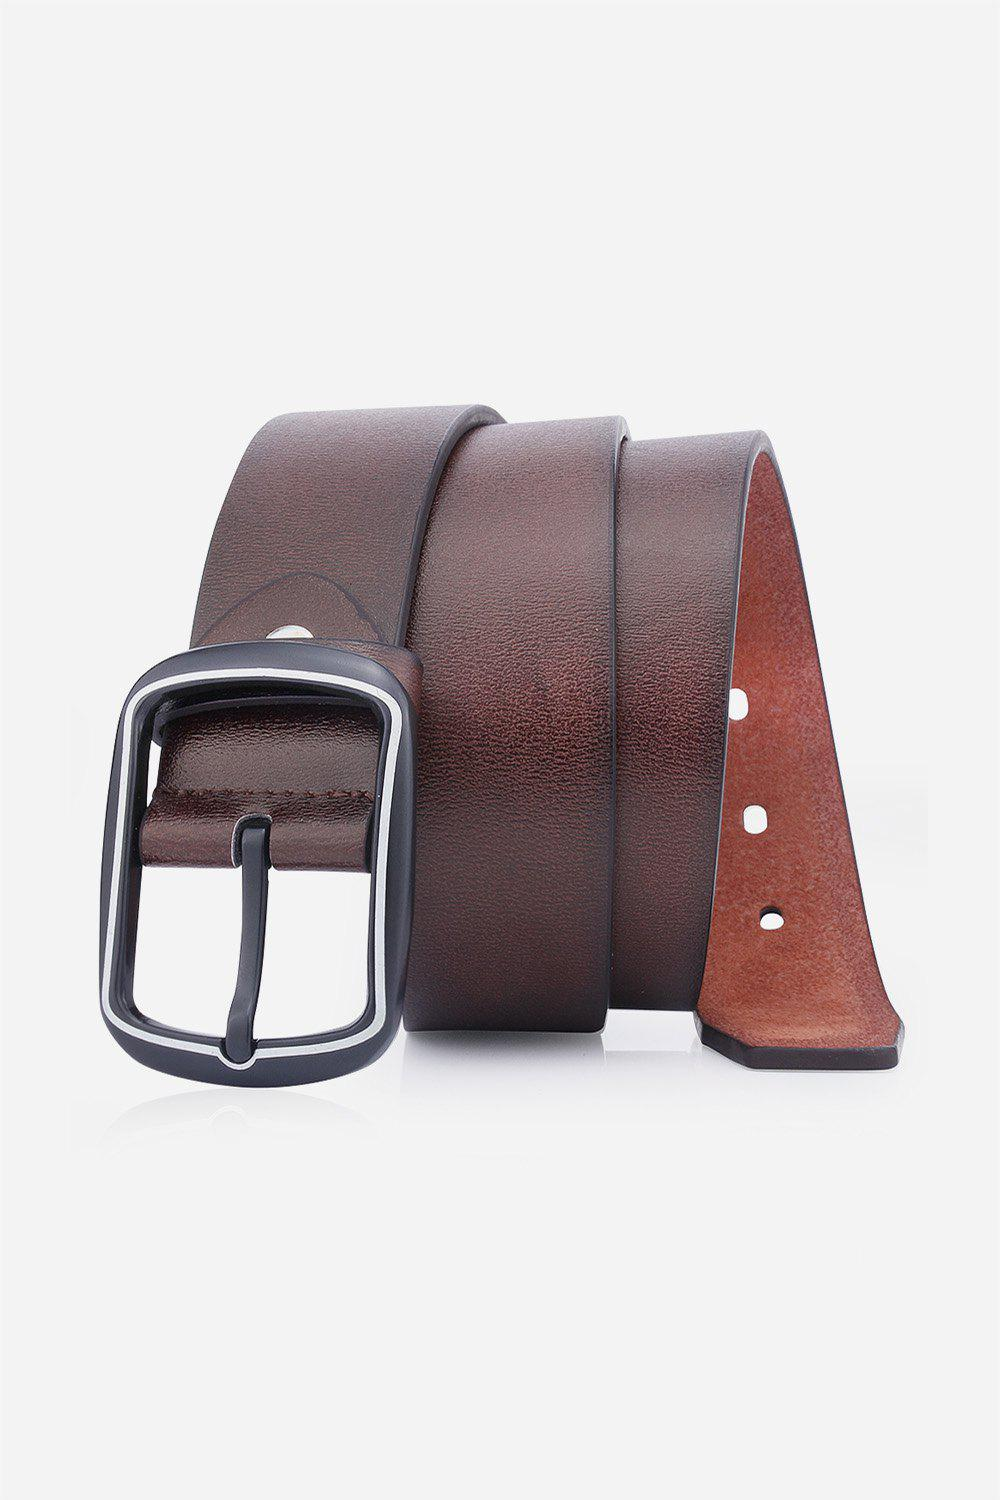 Artificial Leather Rectangular Pin Buckle Belt - COFFEE